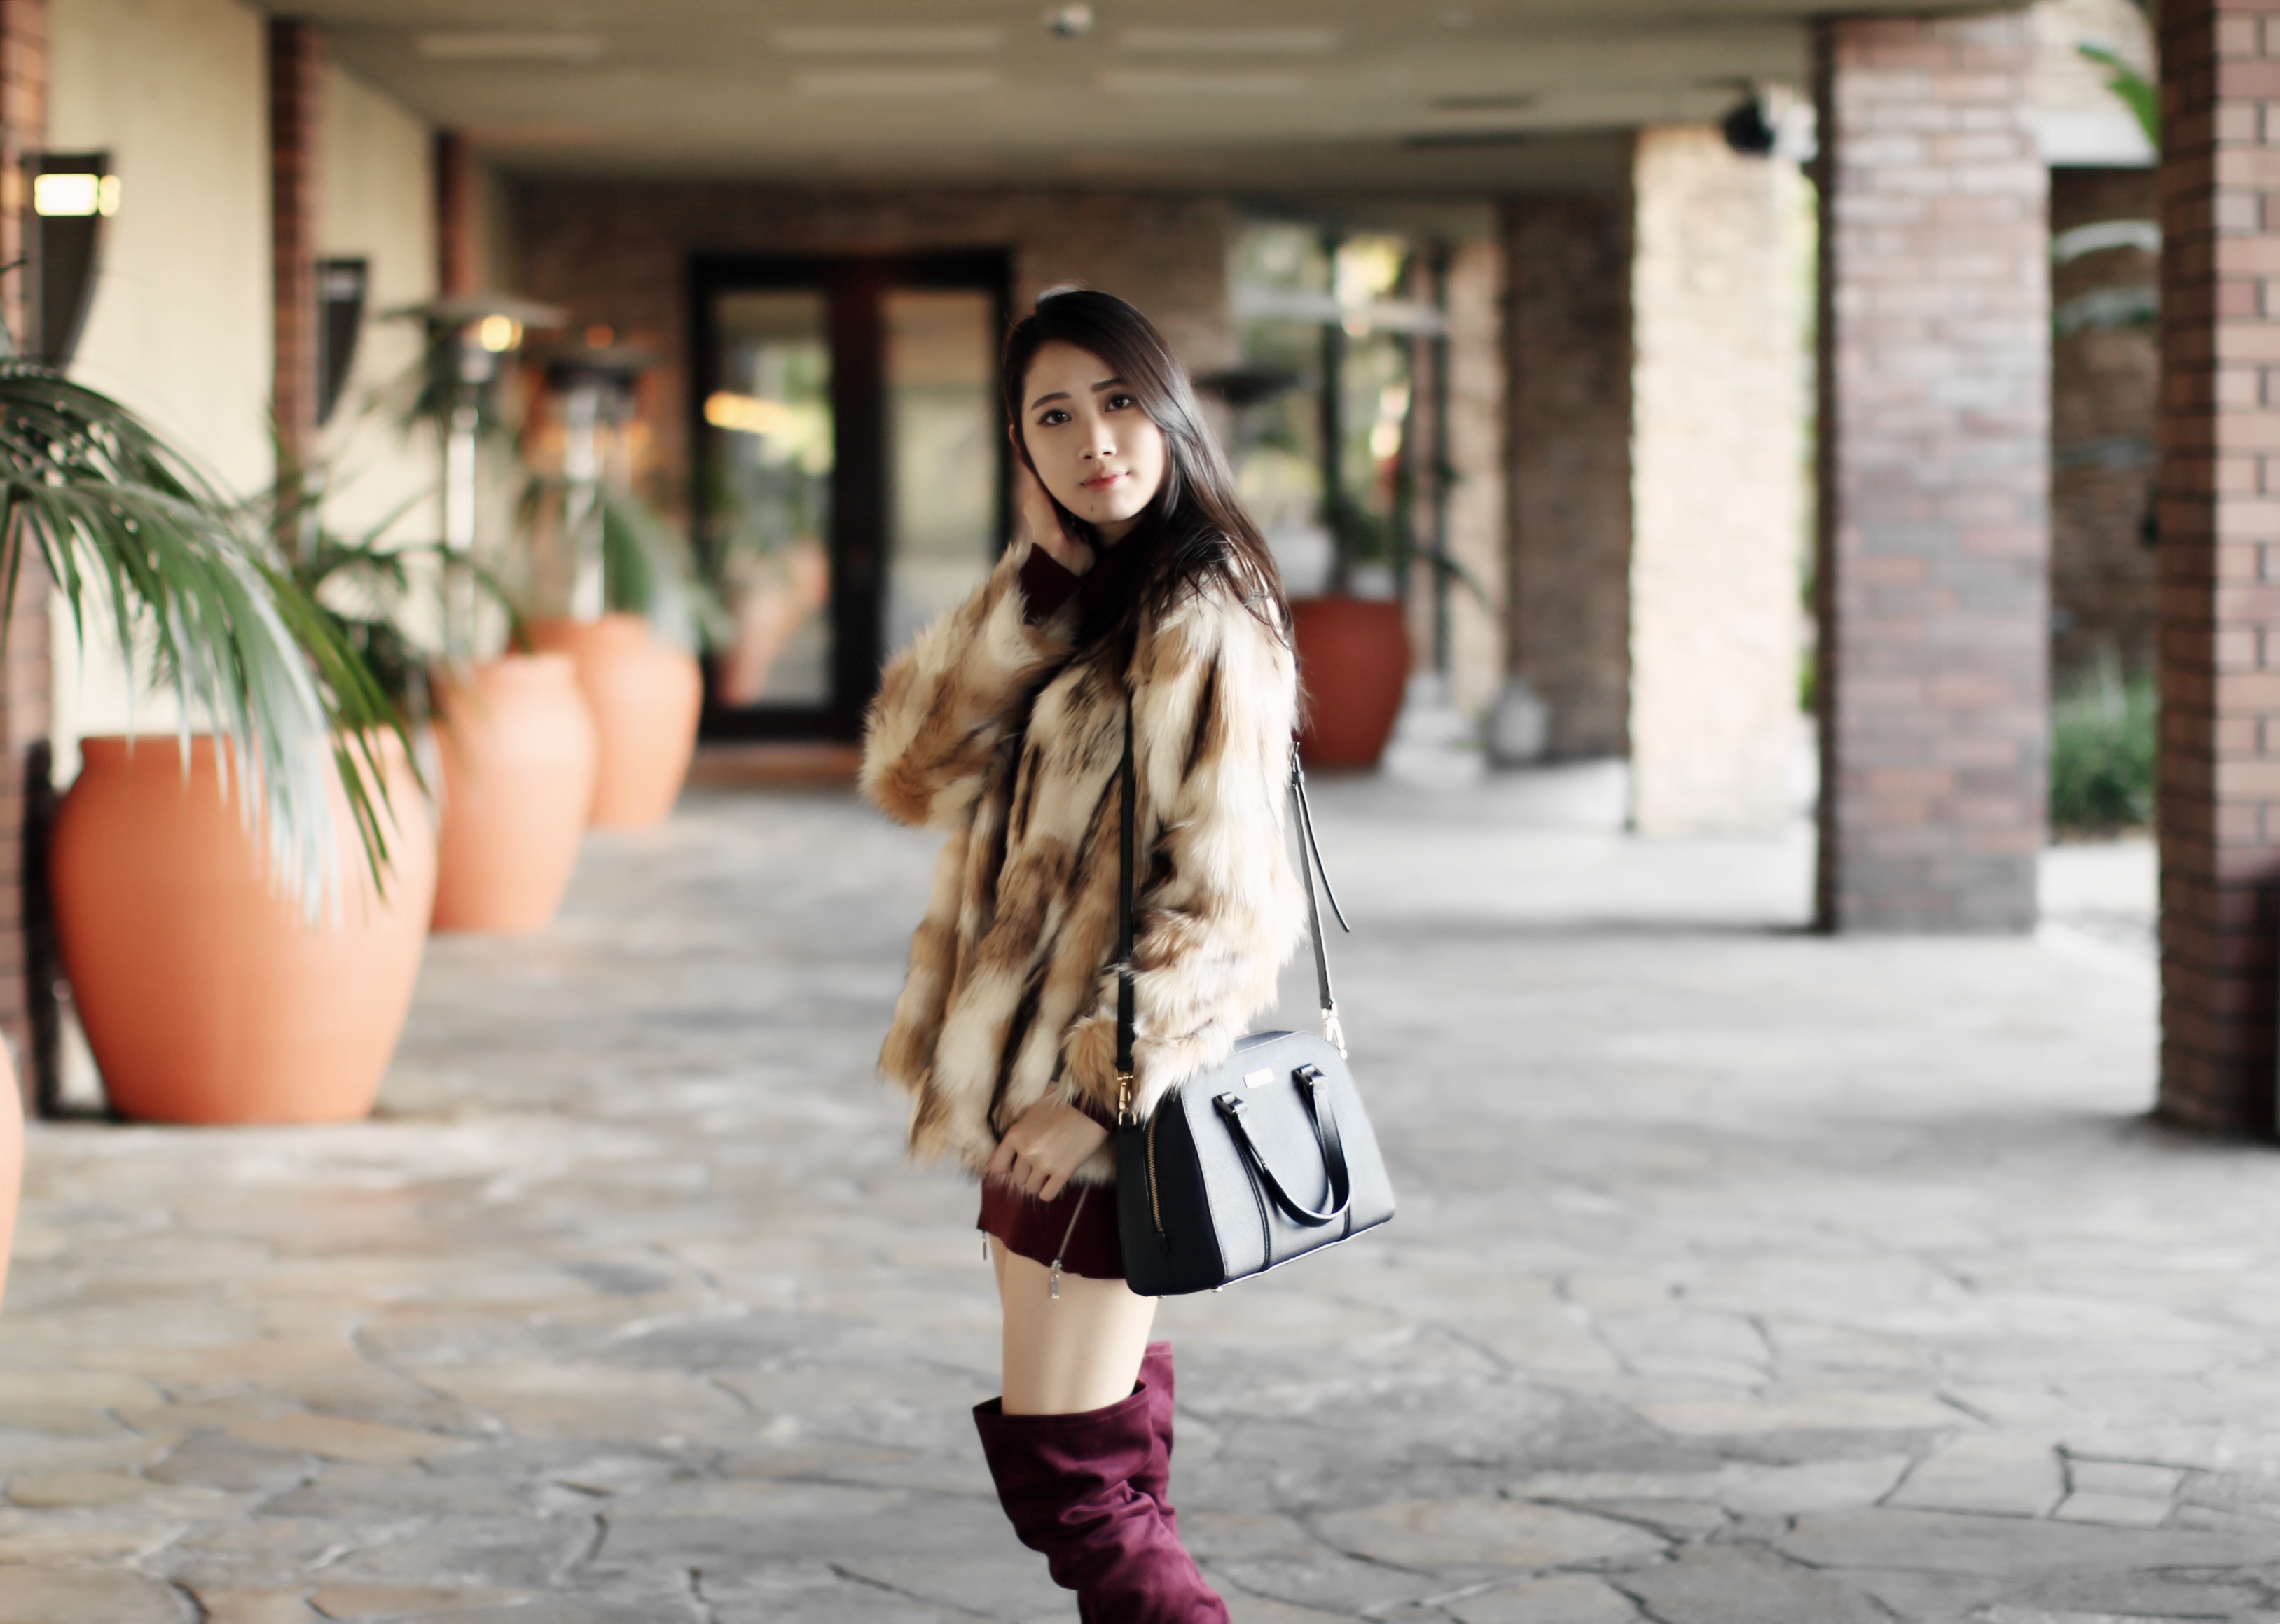 3761-ootd-fashion-style-outfitoftheday-wiwt-vincecamuto-fauxfur-otkboots-fallfashion-forever21-f21-hollister-koreanfashion-sponsored-elizabeeetht-clothestoyouuu